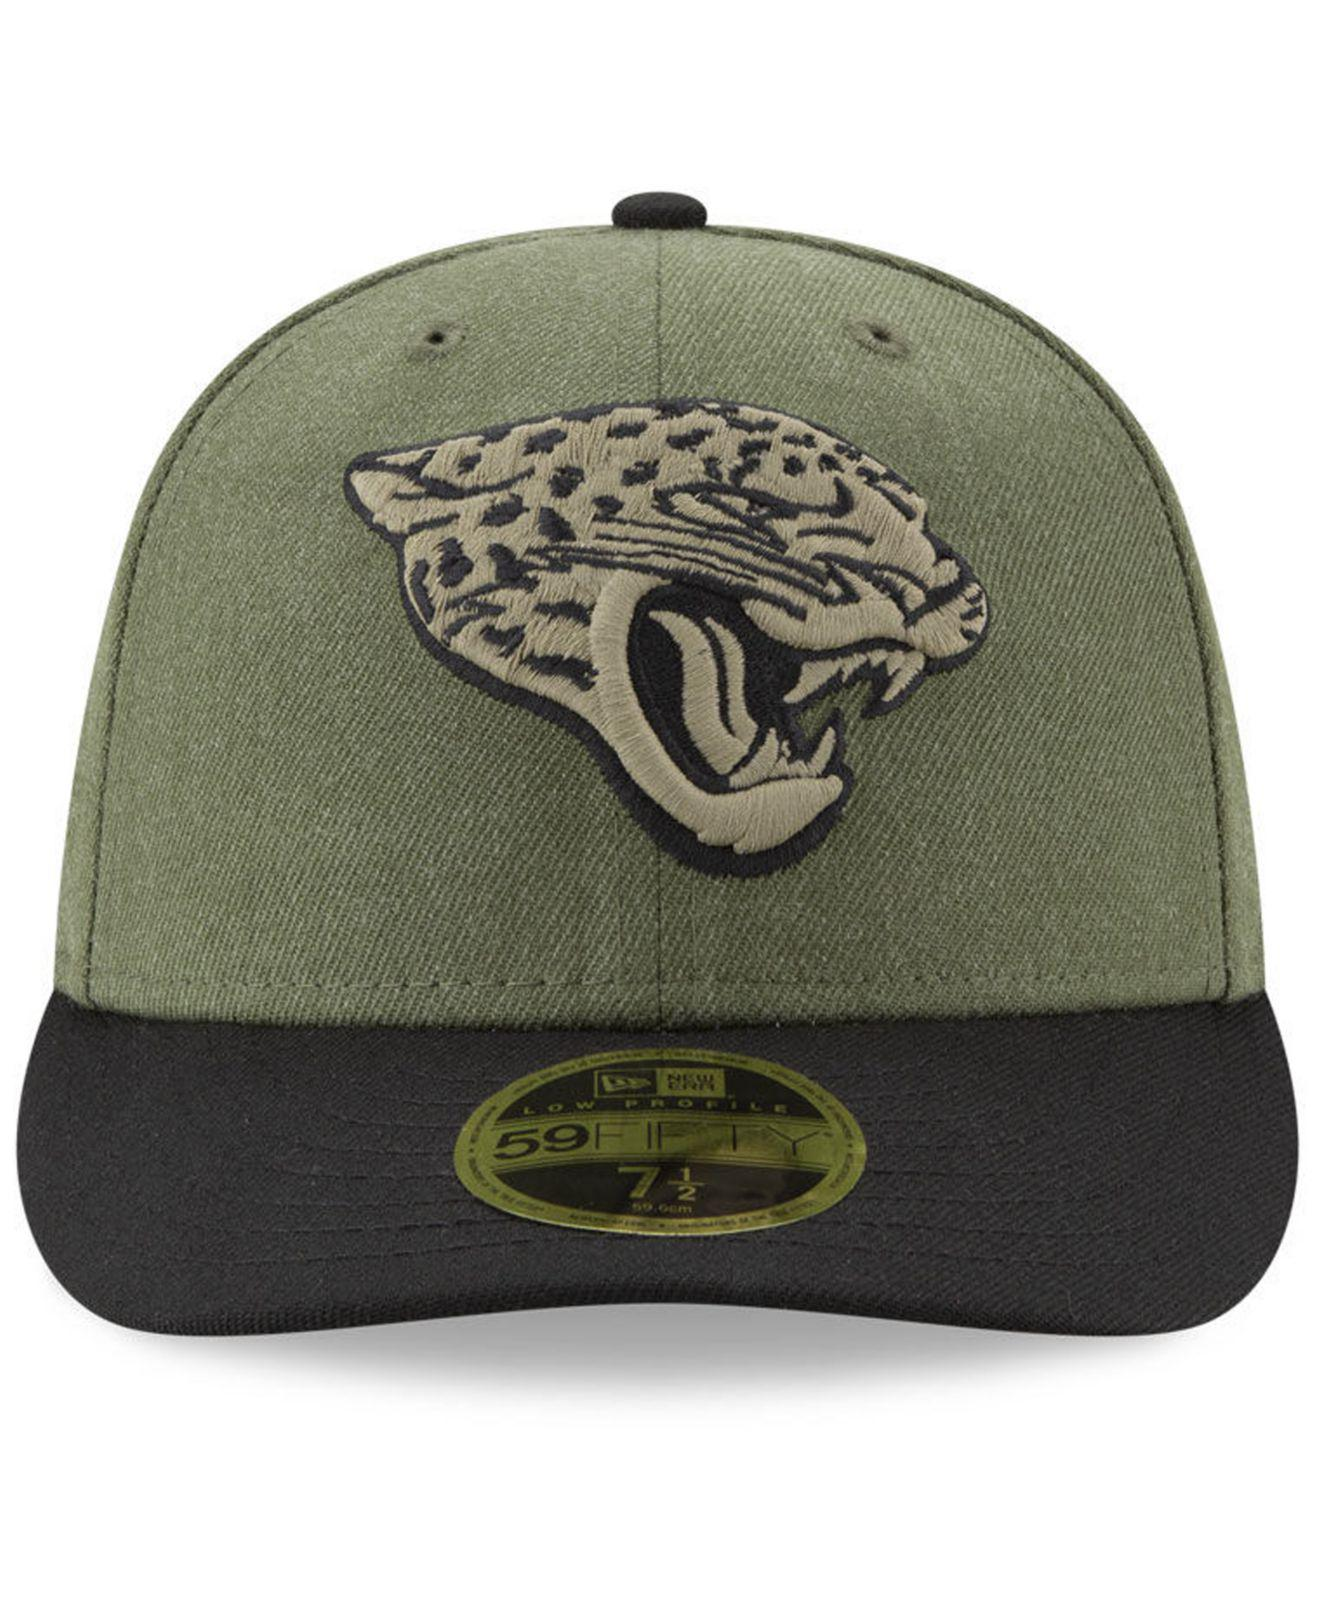 cbe545848 Lyst - KTZ Jacksonville Jaguars Salute To Service Low Profile 59fifty  Fitted Cap 2018 in Green for Men